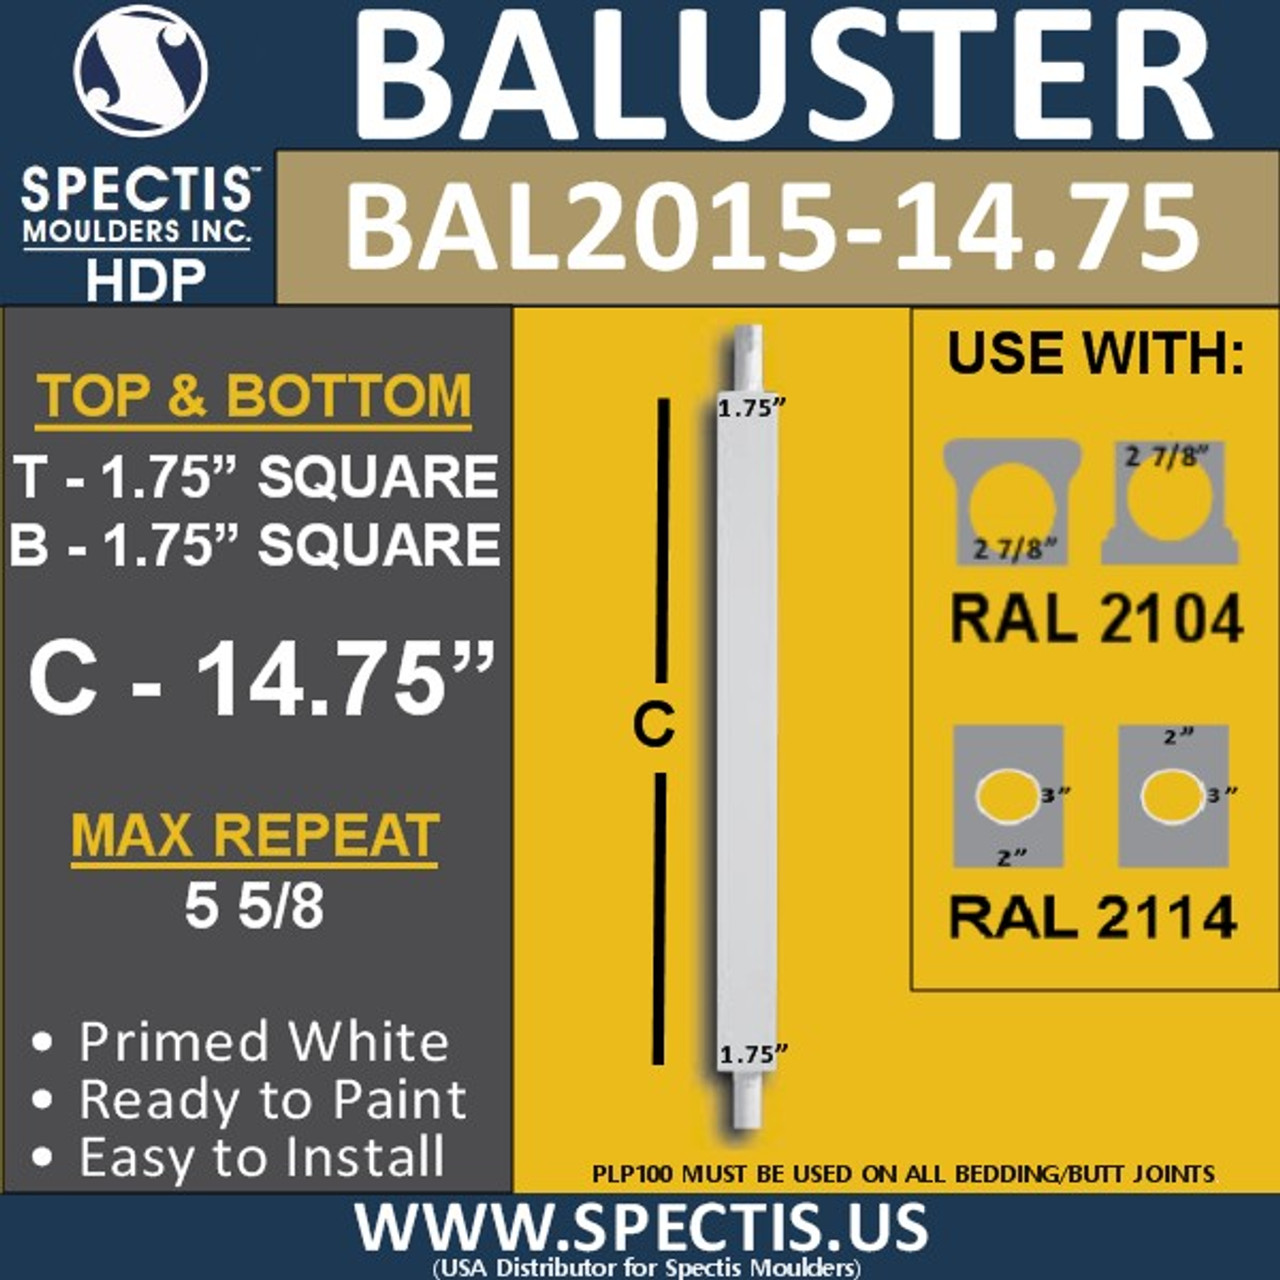 "BAL2015-14.75 Urethane Baluster or Spindle 1 3/4""W X 14 3/4""H"